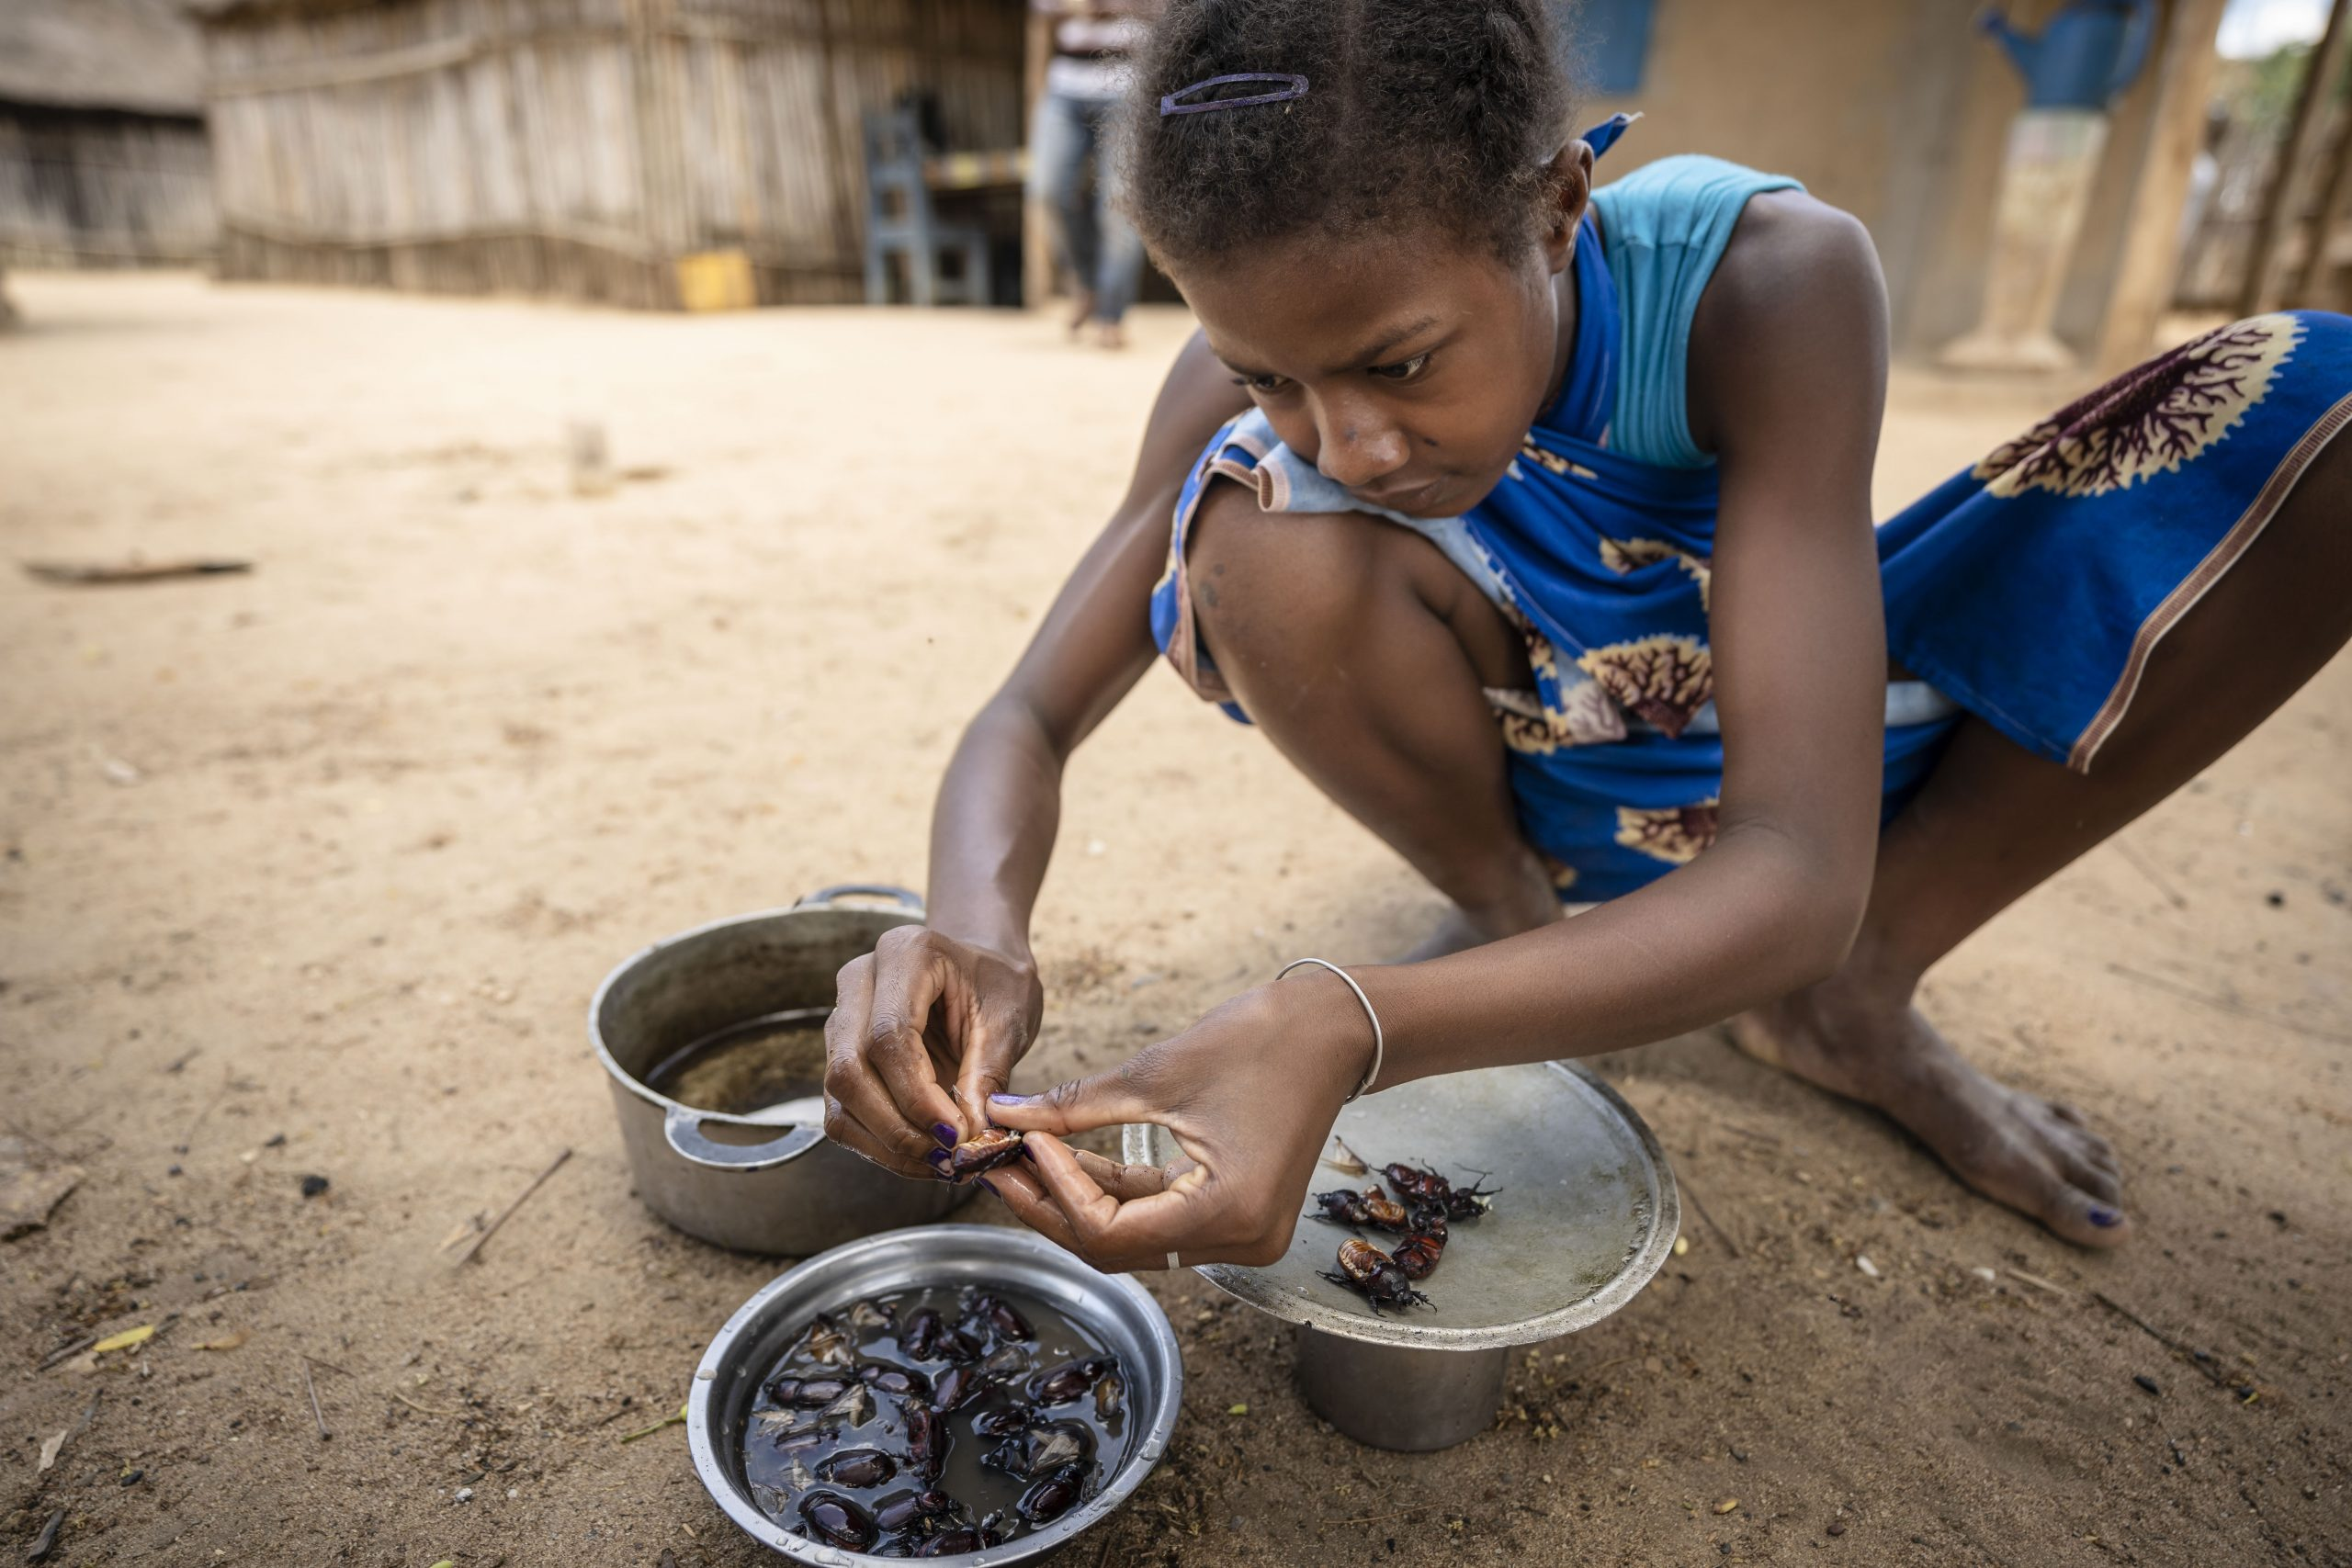 Insect farming could serve an important role in alleviating food insecurity in Madagascar, where almost half of all children under five are malnourished.